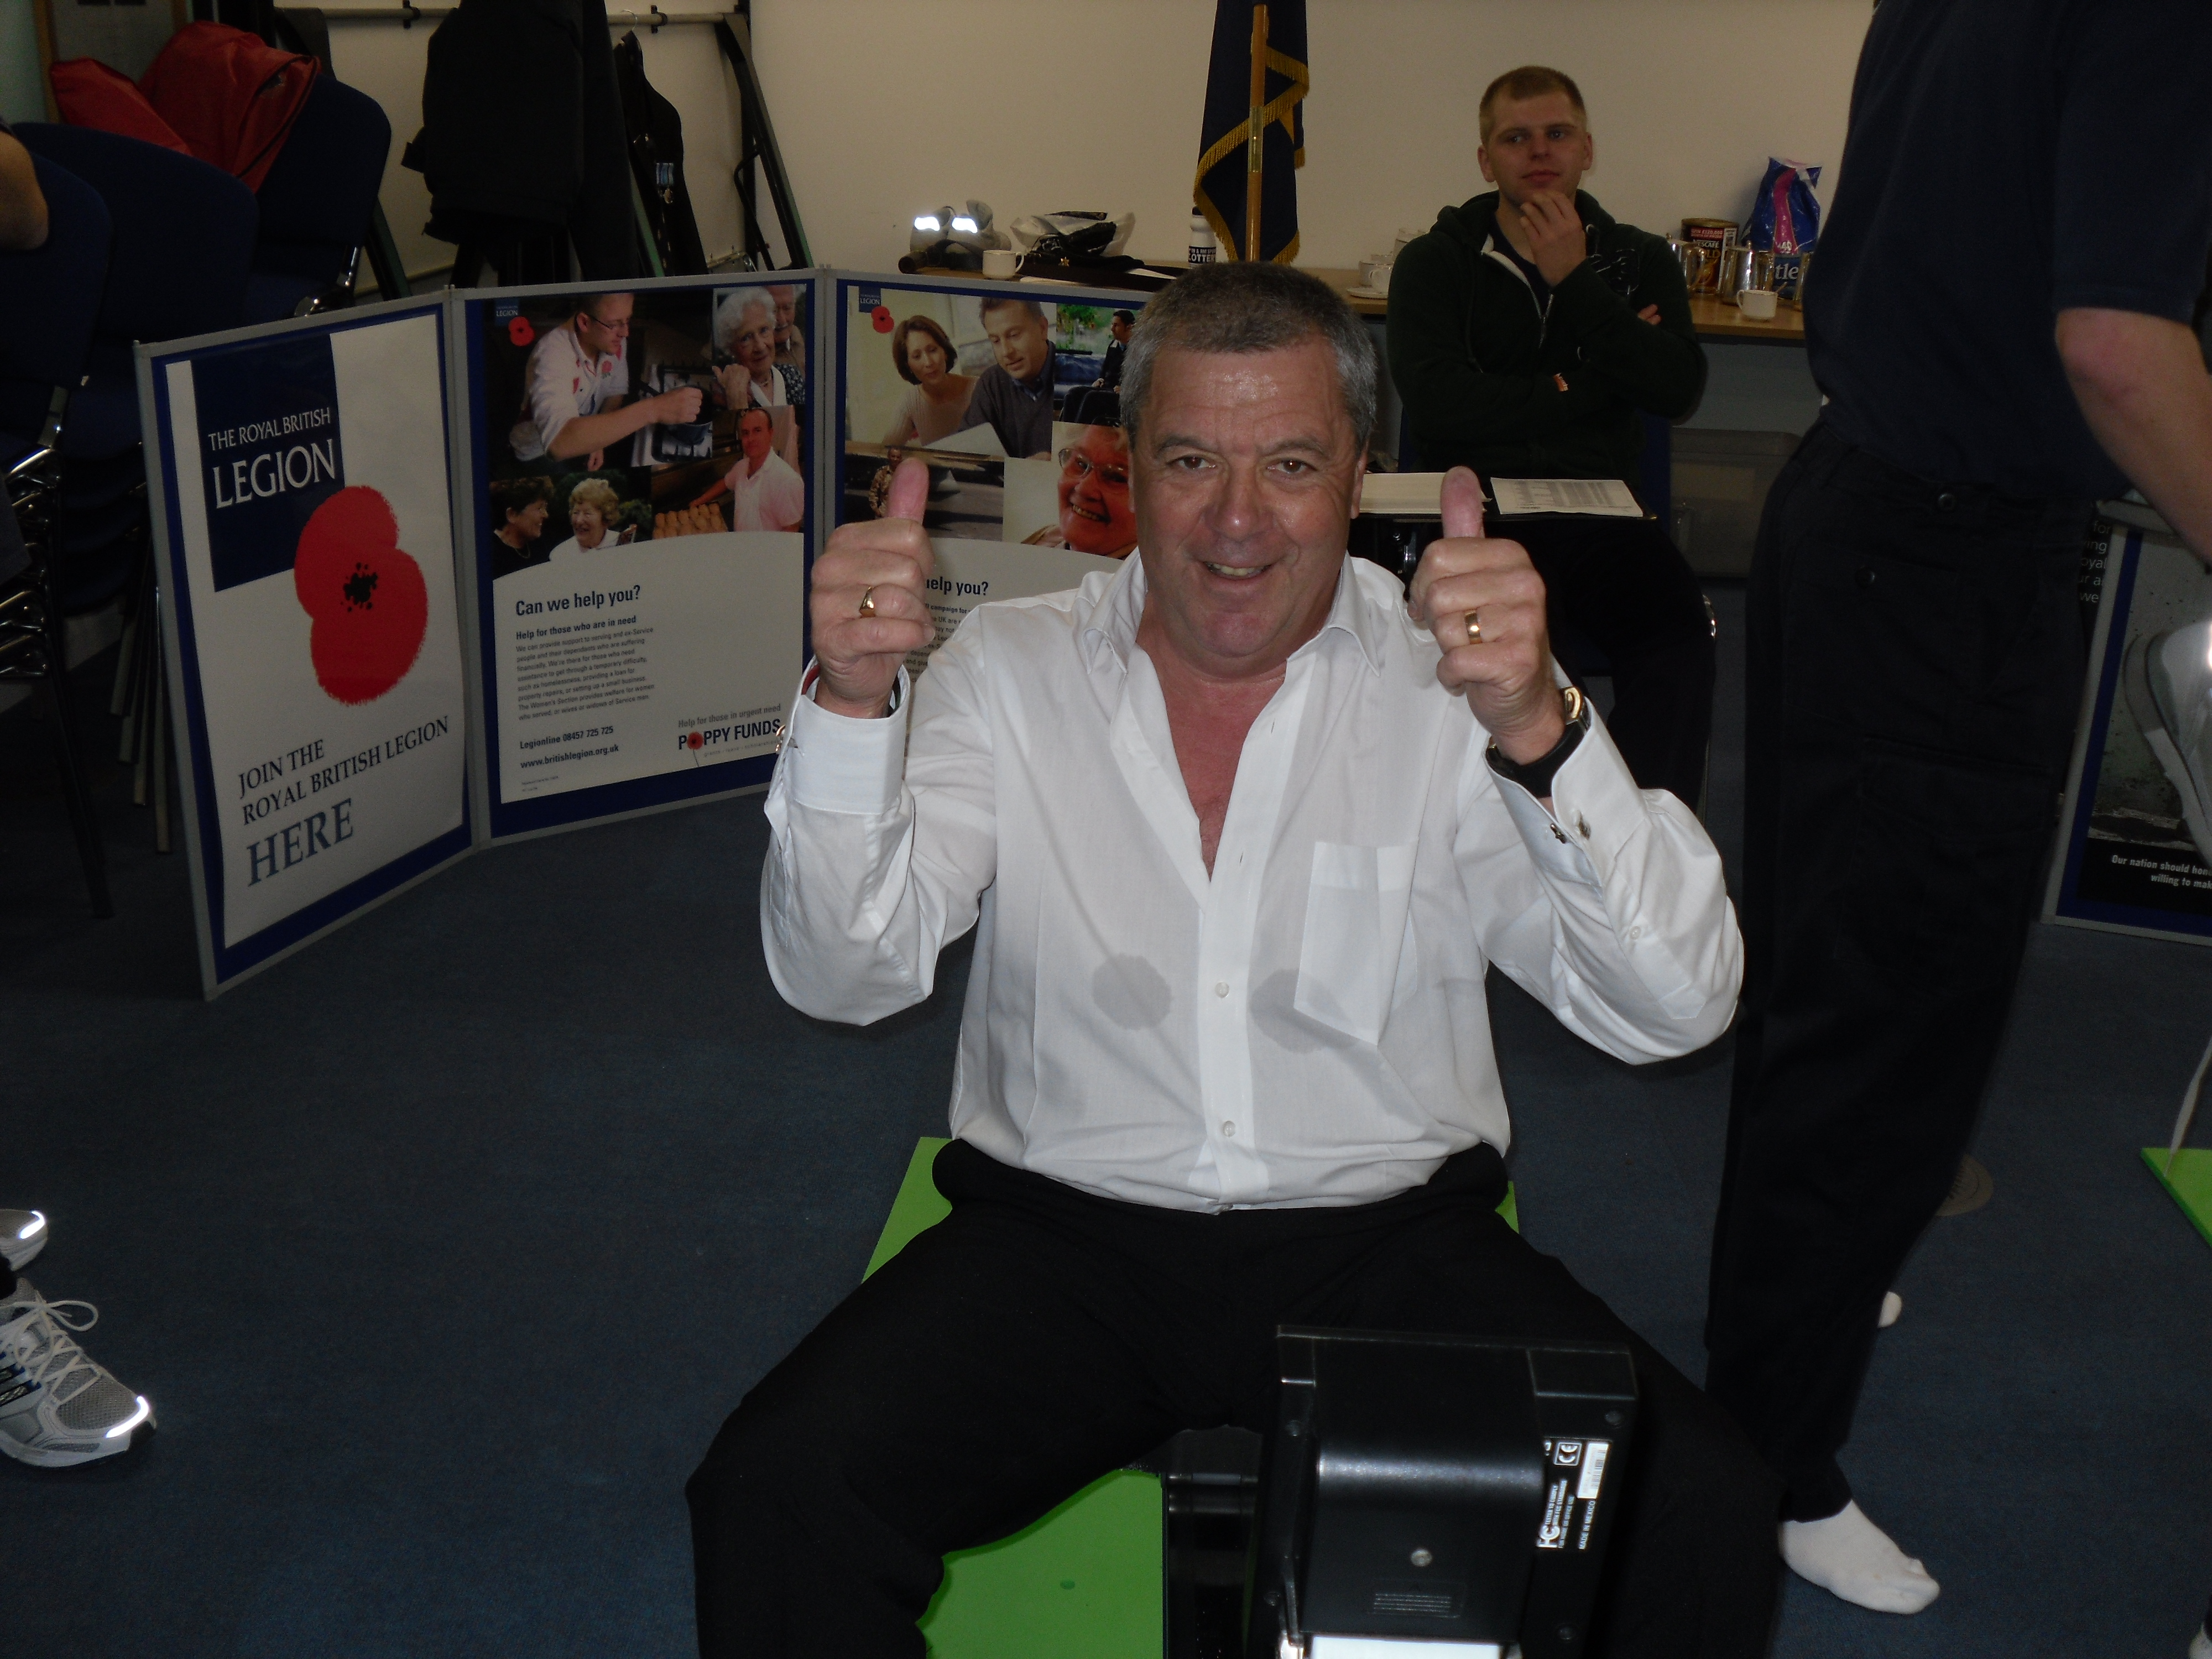 HMS Raleigh 24 hour Row Challenge - Torpoint Branch - The